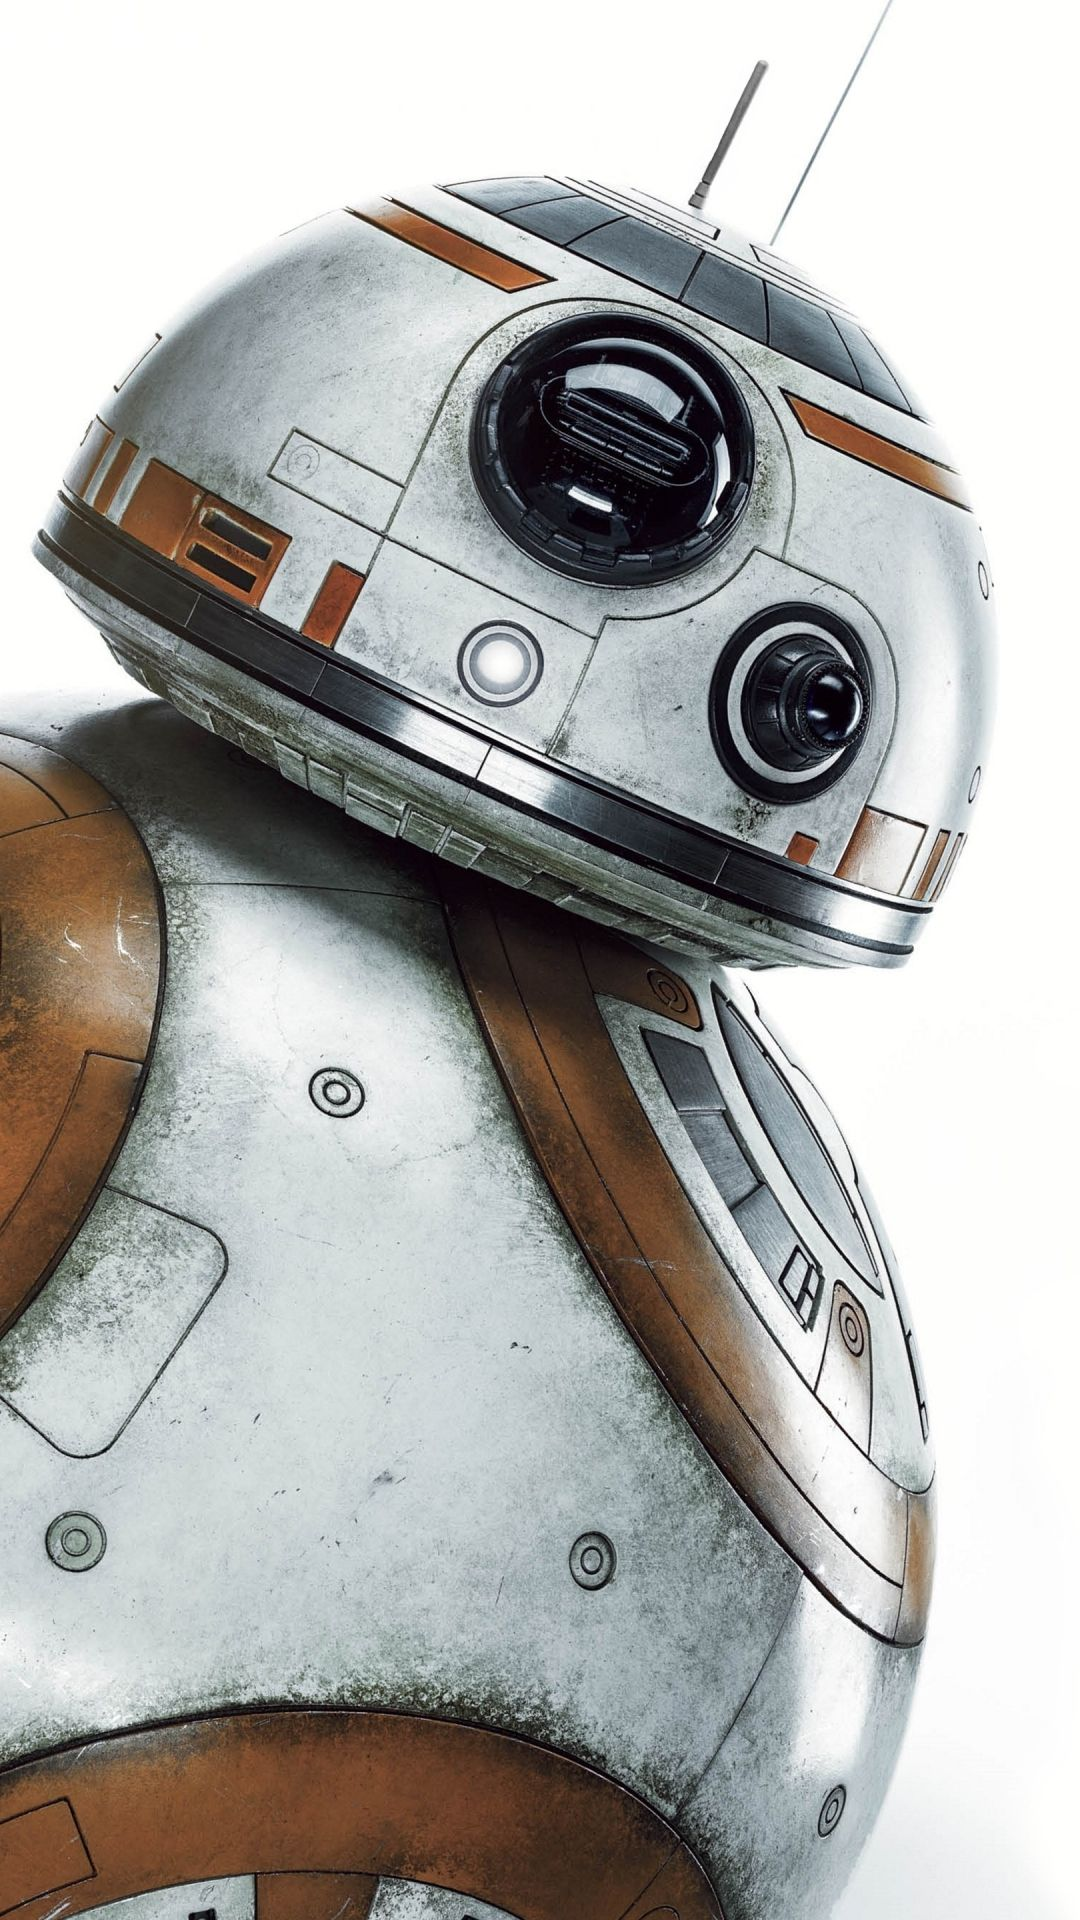 movie star wars episode vii the force awakens star wars bb 8